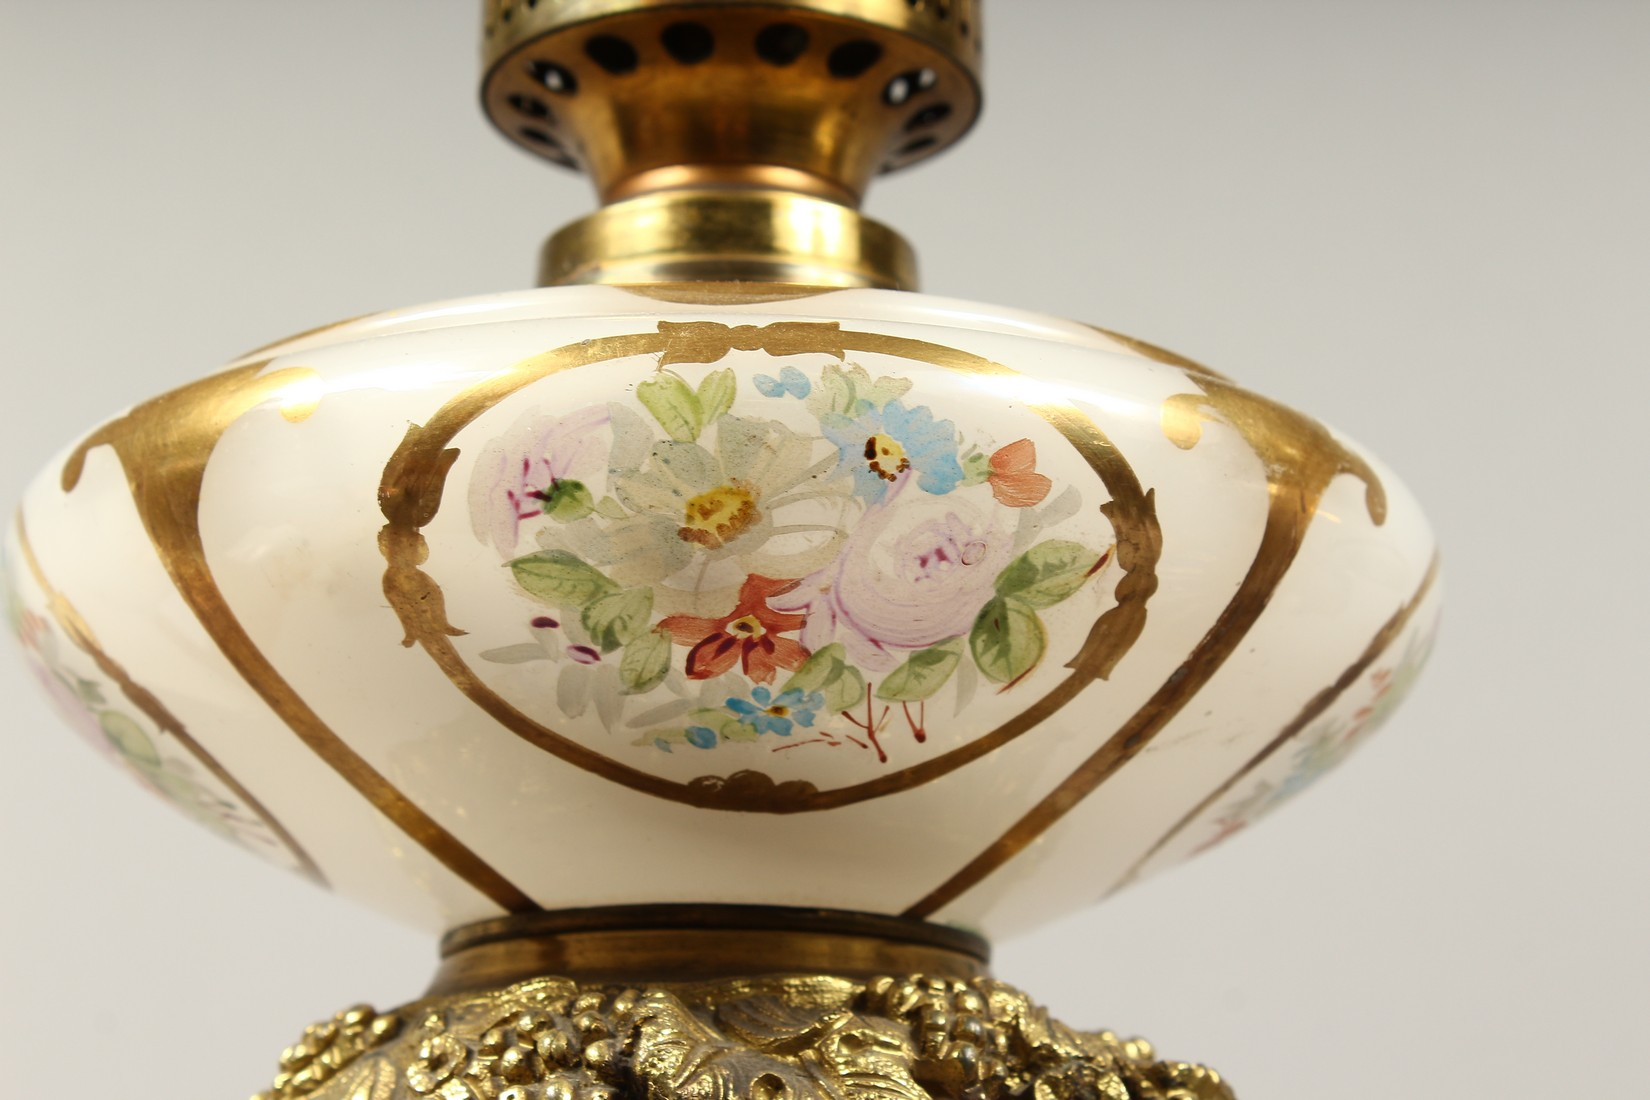 A SUPERB PAIR OF 19TH CENTURY FRENCH PORCELAIN AND GILT BRONZE LAMPS ON STANDS, painted with - Image 9 of 24